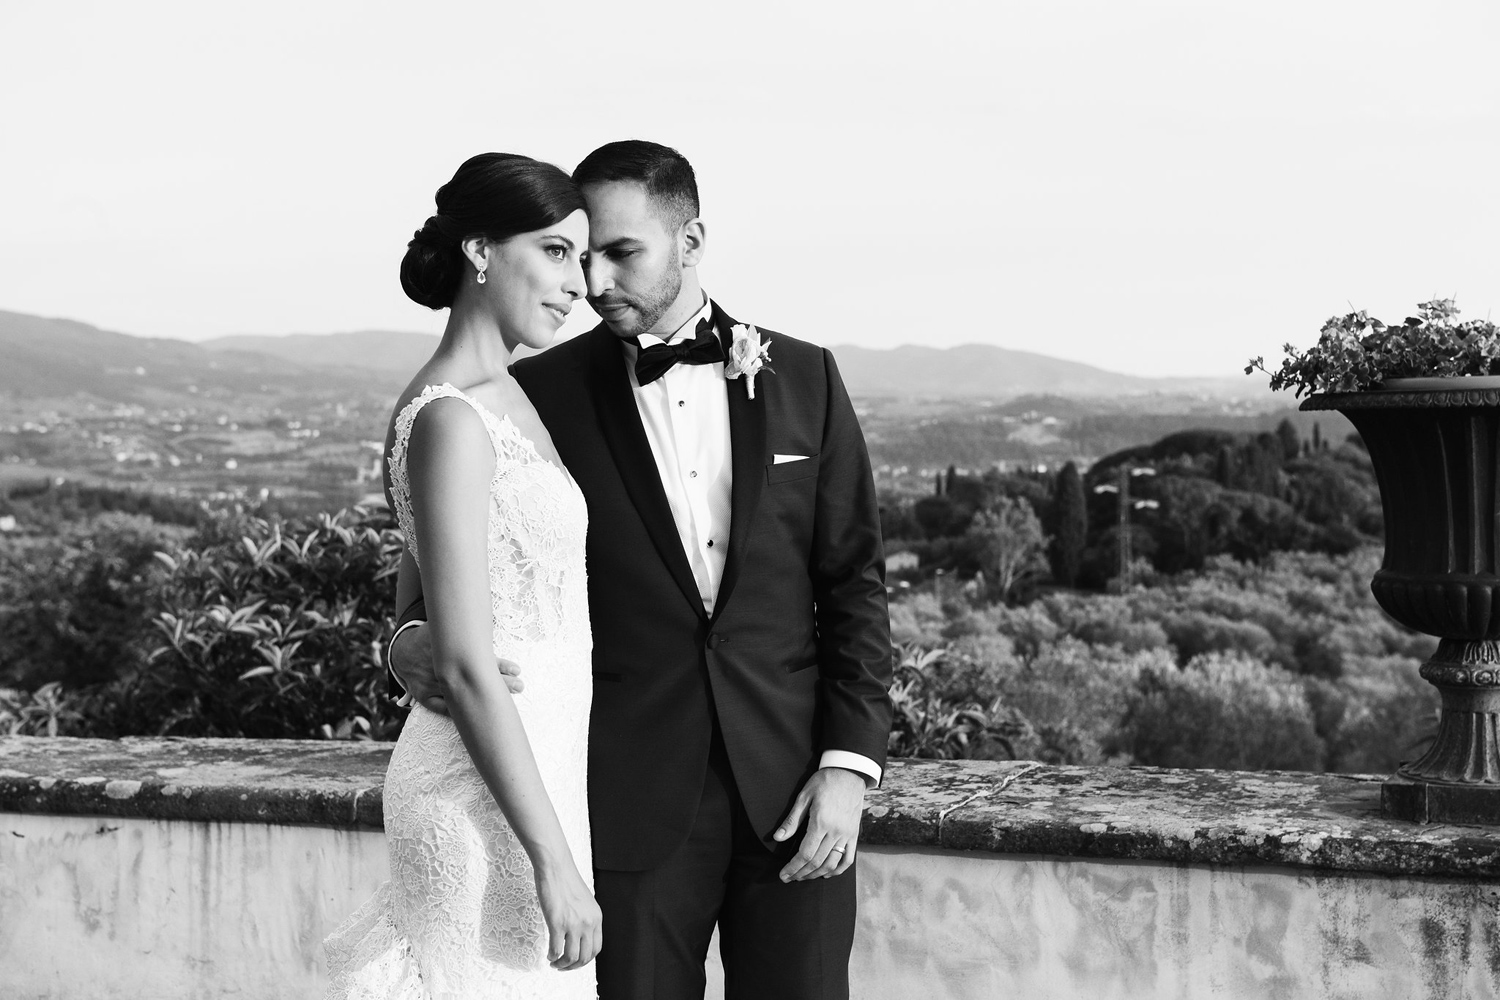 katie_mitchell_wedding_florence_tuscany_villa_di_miano_wedding_photography_53.jpg